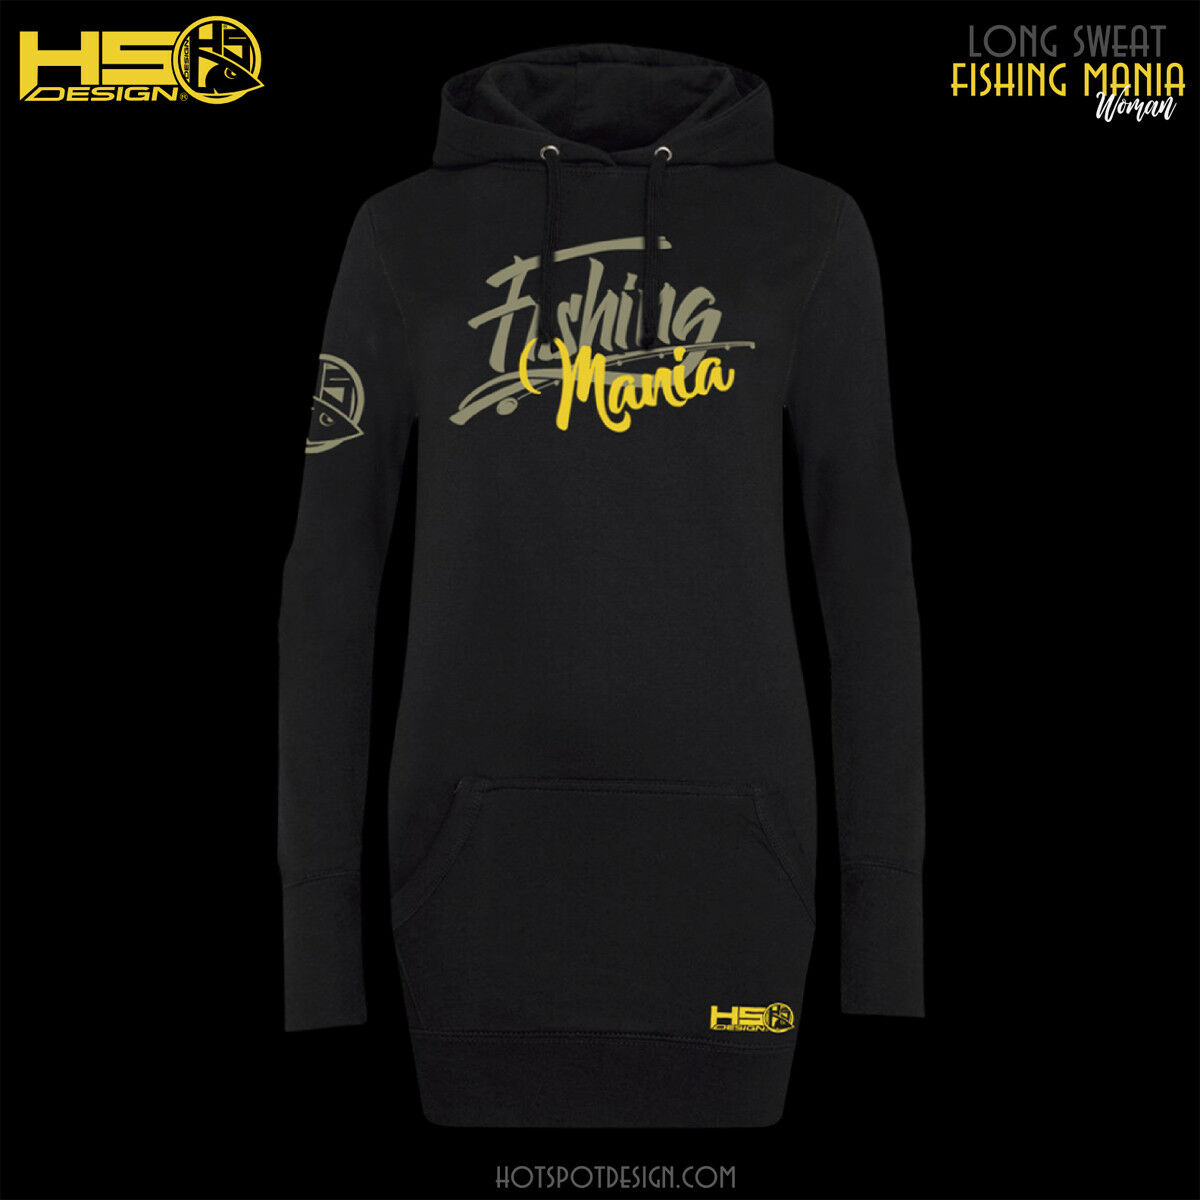 Hotspot Design Long Hoodie fishing Mania mujer, mujer, mujer, Long Sweater 786663